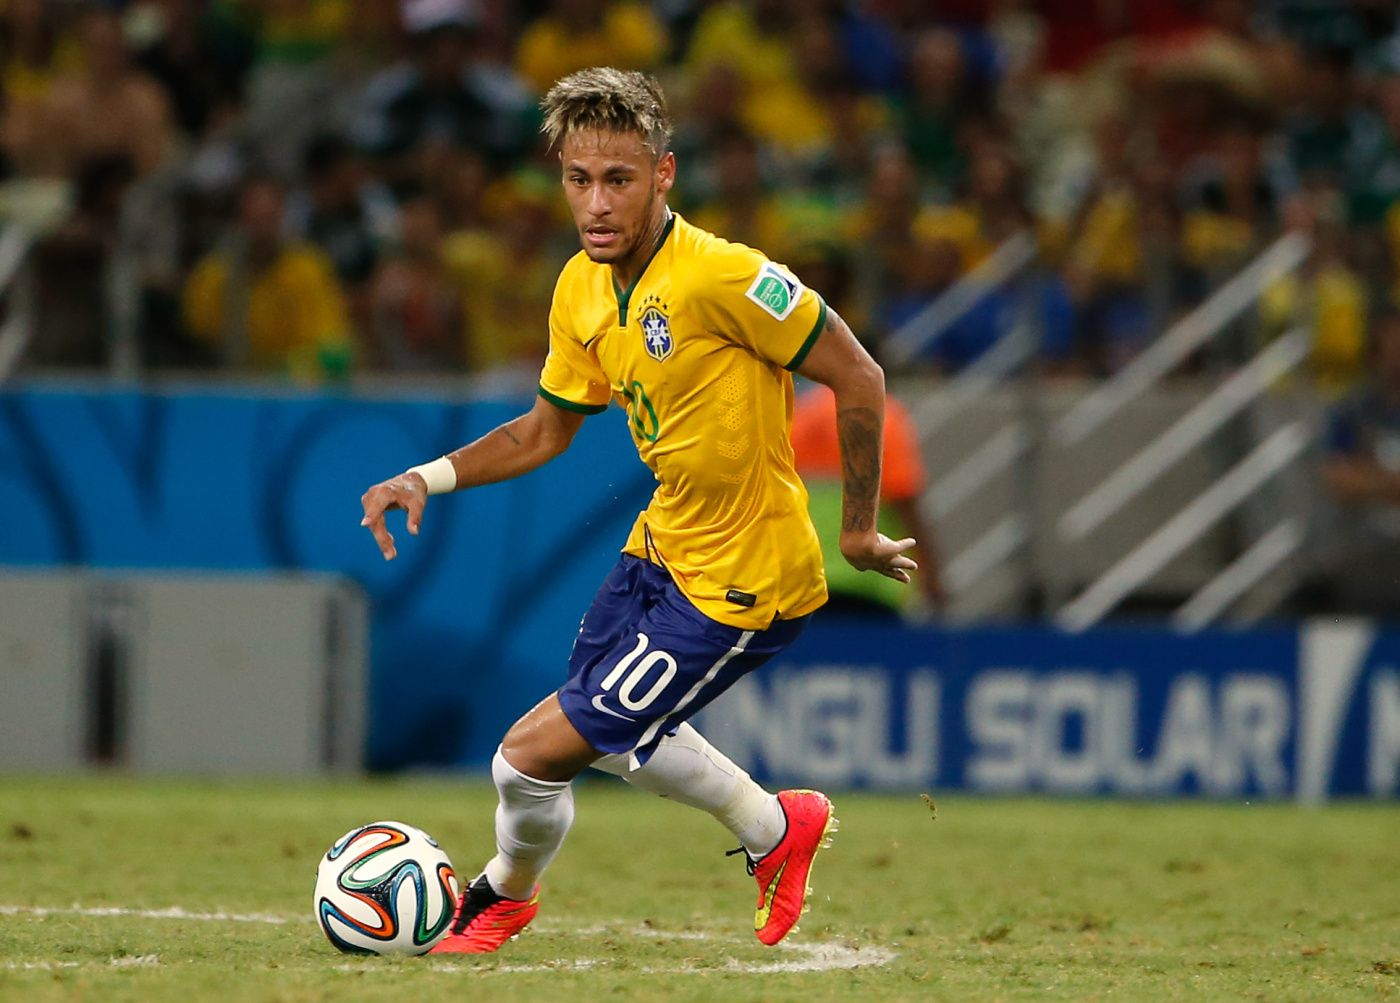 Power ranking the top 5 players in the World Cup | Sports ... Neymar Jr Brazil 2014